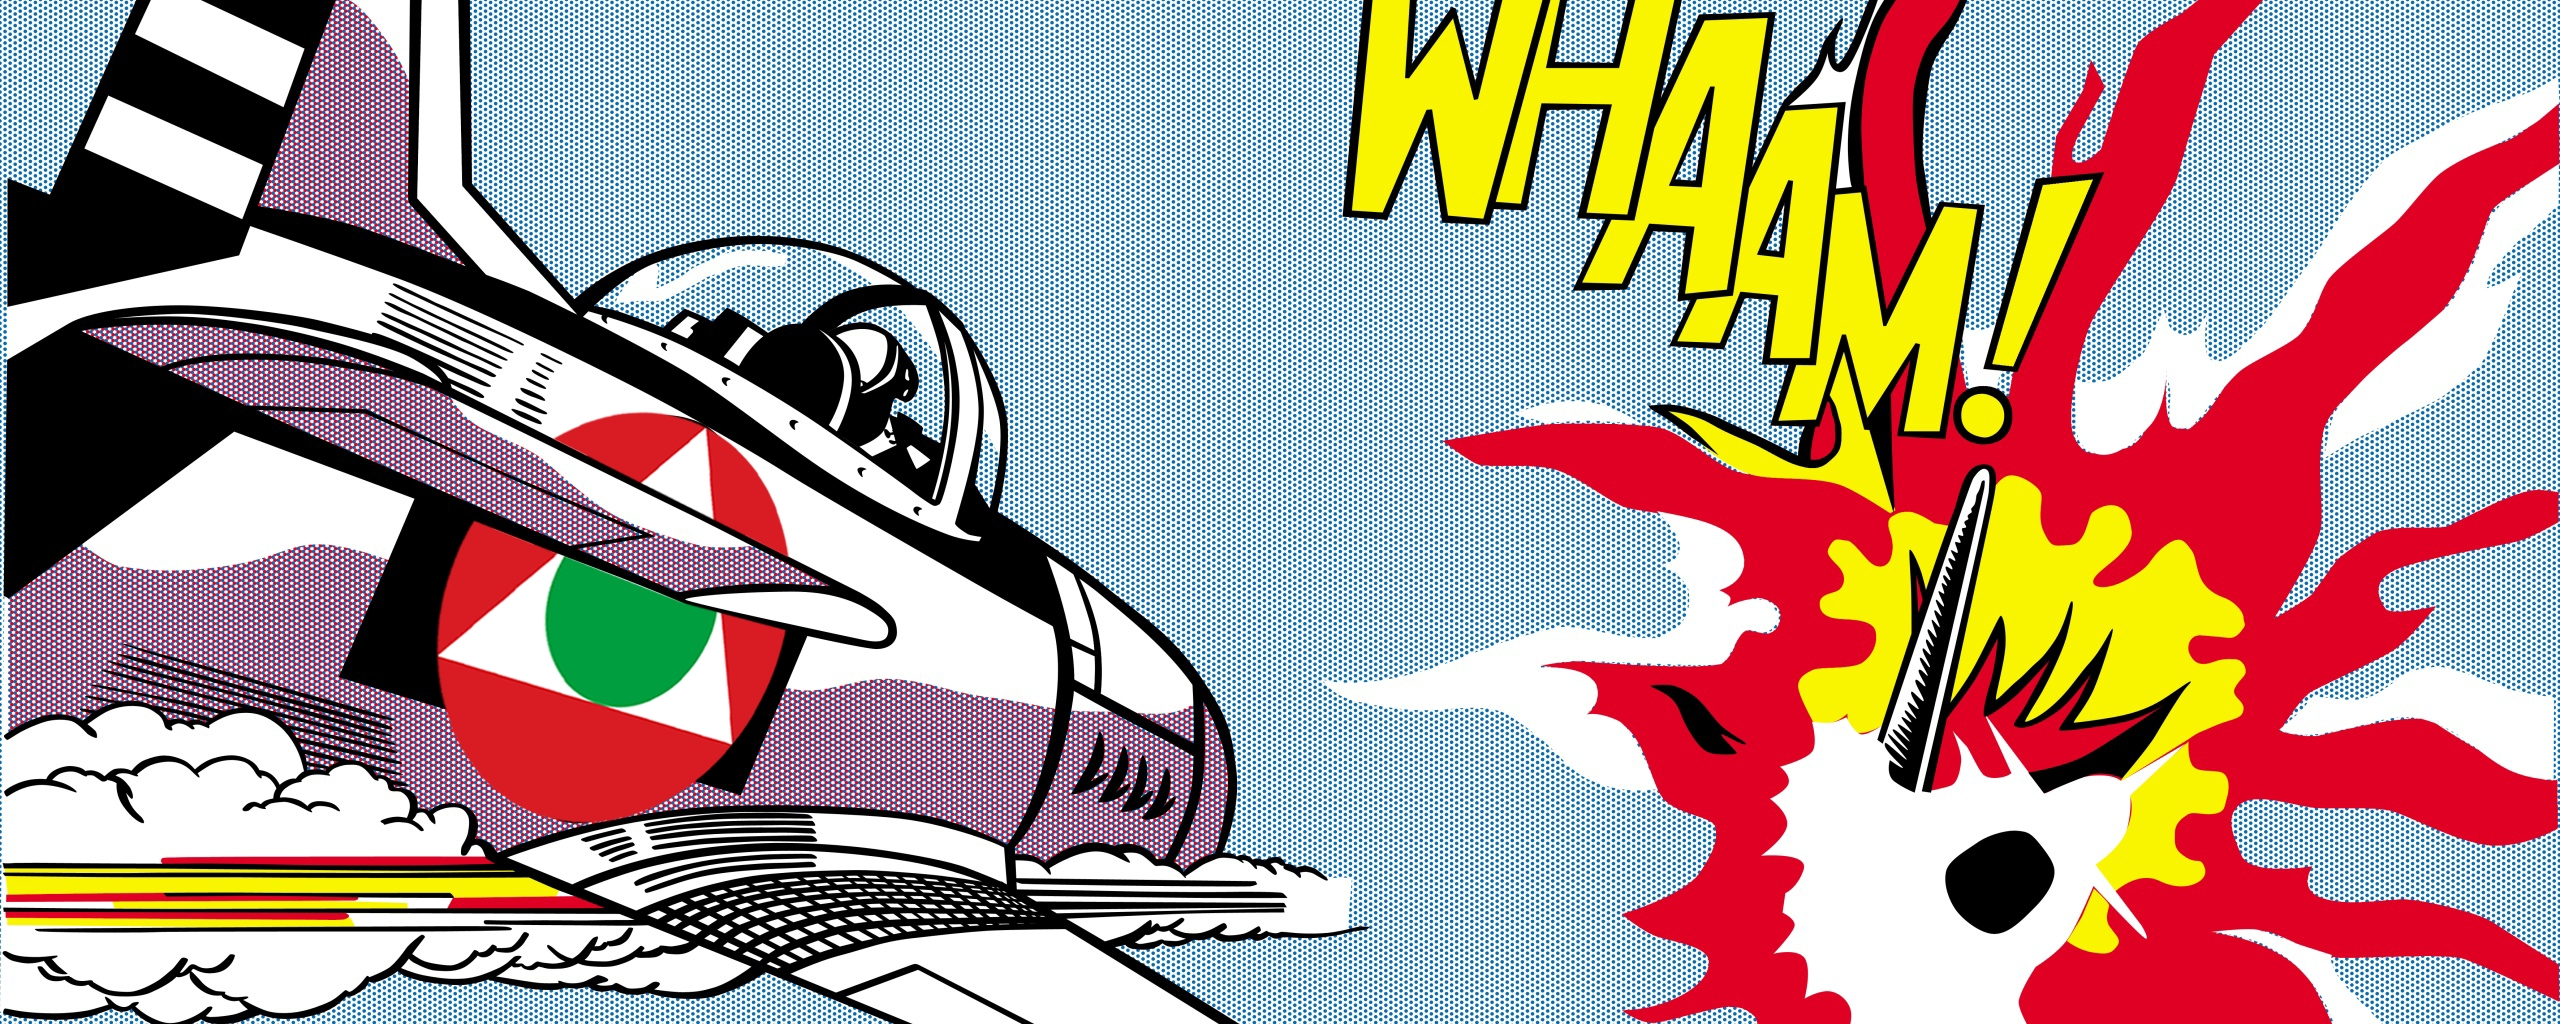 Whaam! (1963)pop Artist Roy Lichtenstein Wallpaper And In Most Current Pop Art Wallpaper For Walls (View 3 of 20)